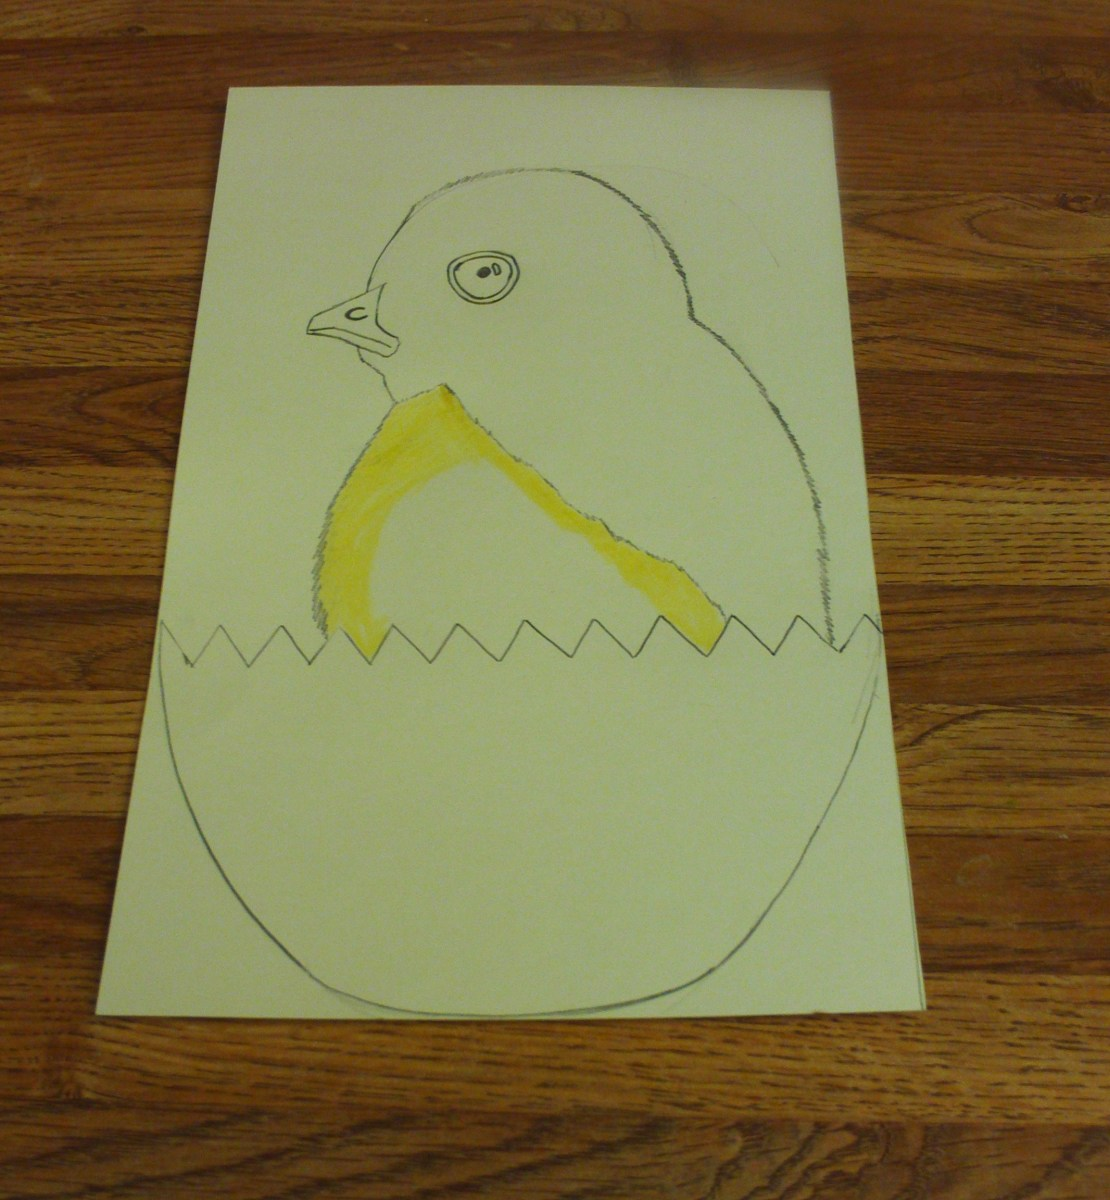 Here I am coloring in the light yellow feathers on the baby chick.